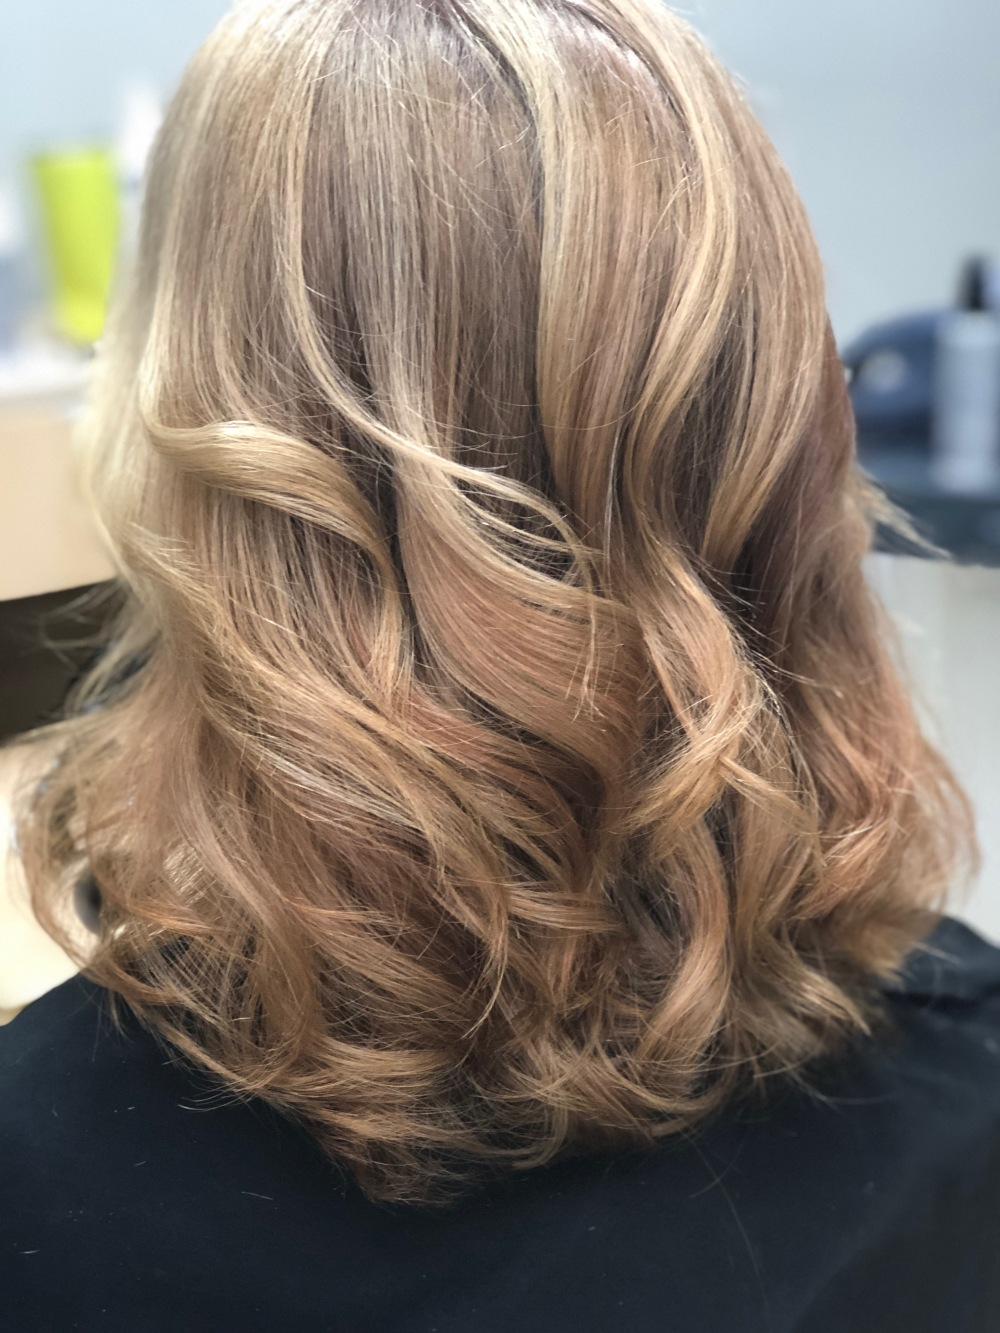 Blonde Hair Color 2018 Hair Colorist Martin Rodriguez